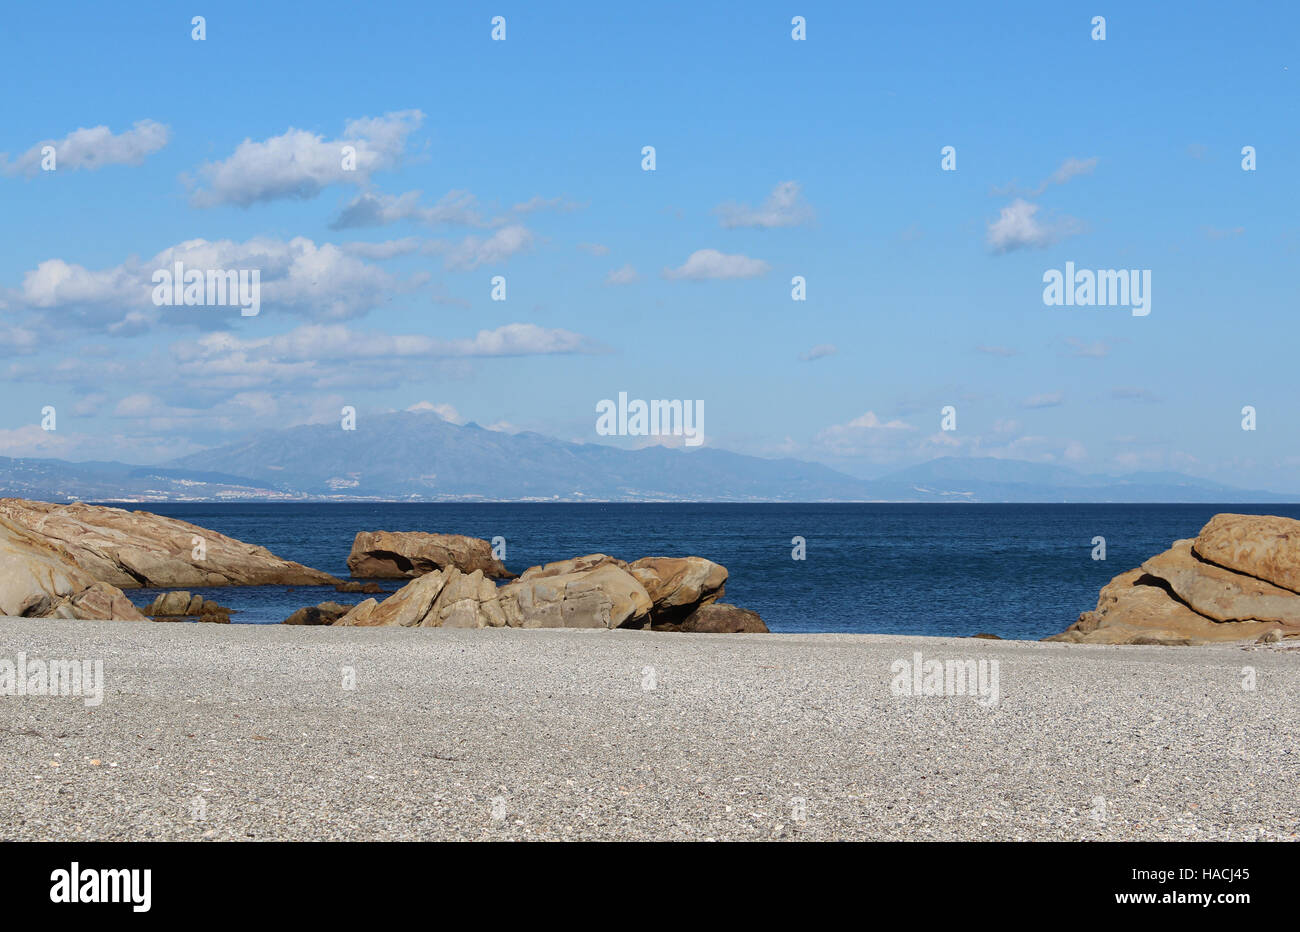 calm partly cloudy day on the beach - Stock Image